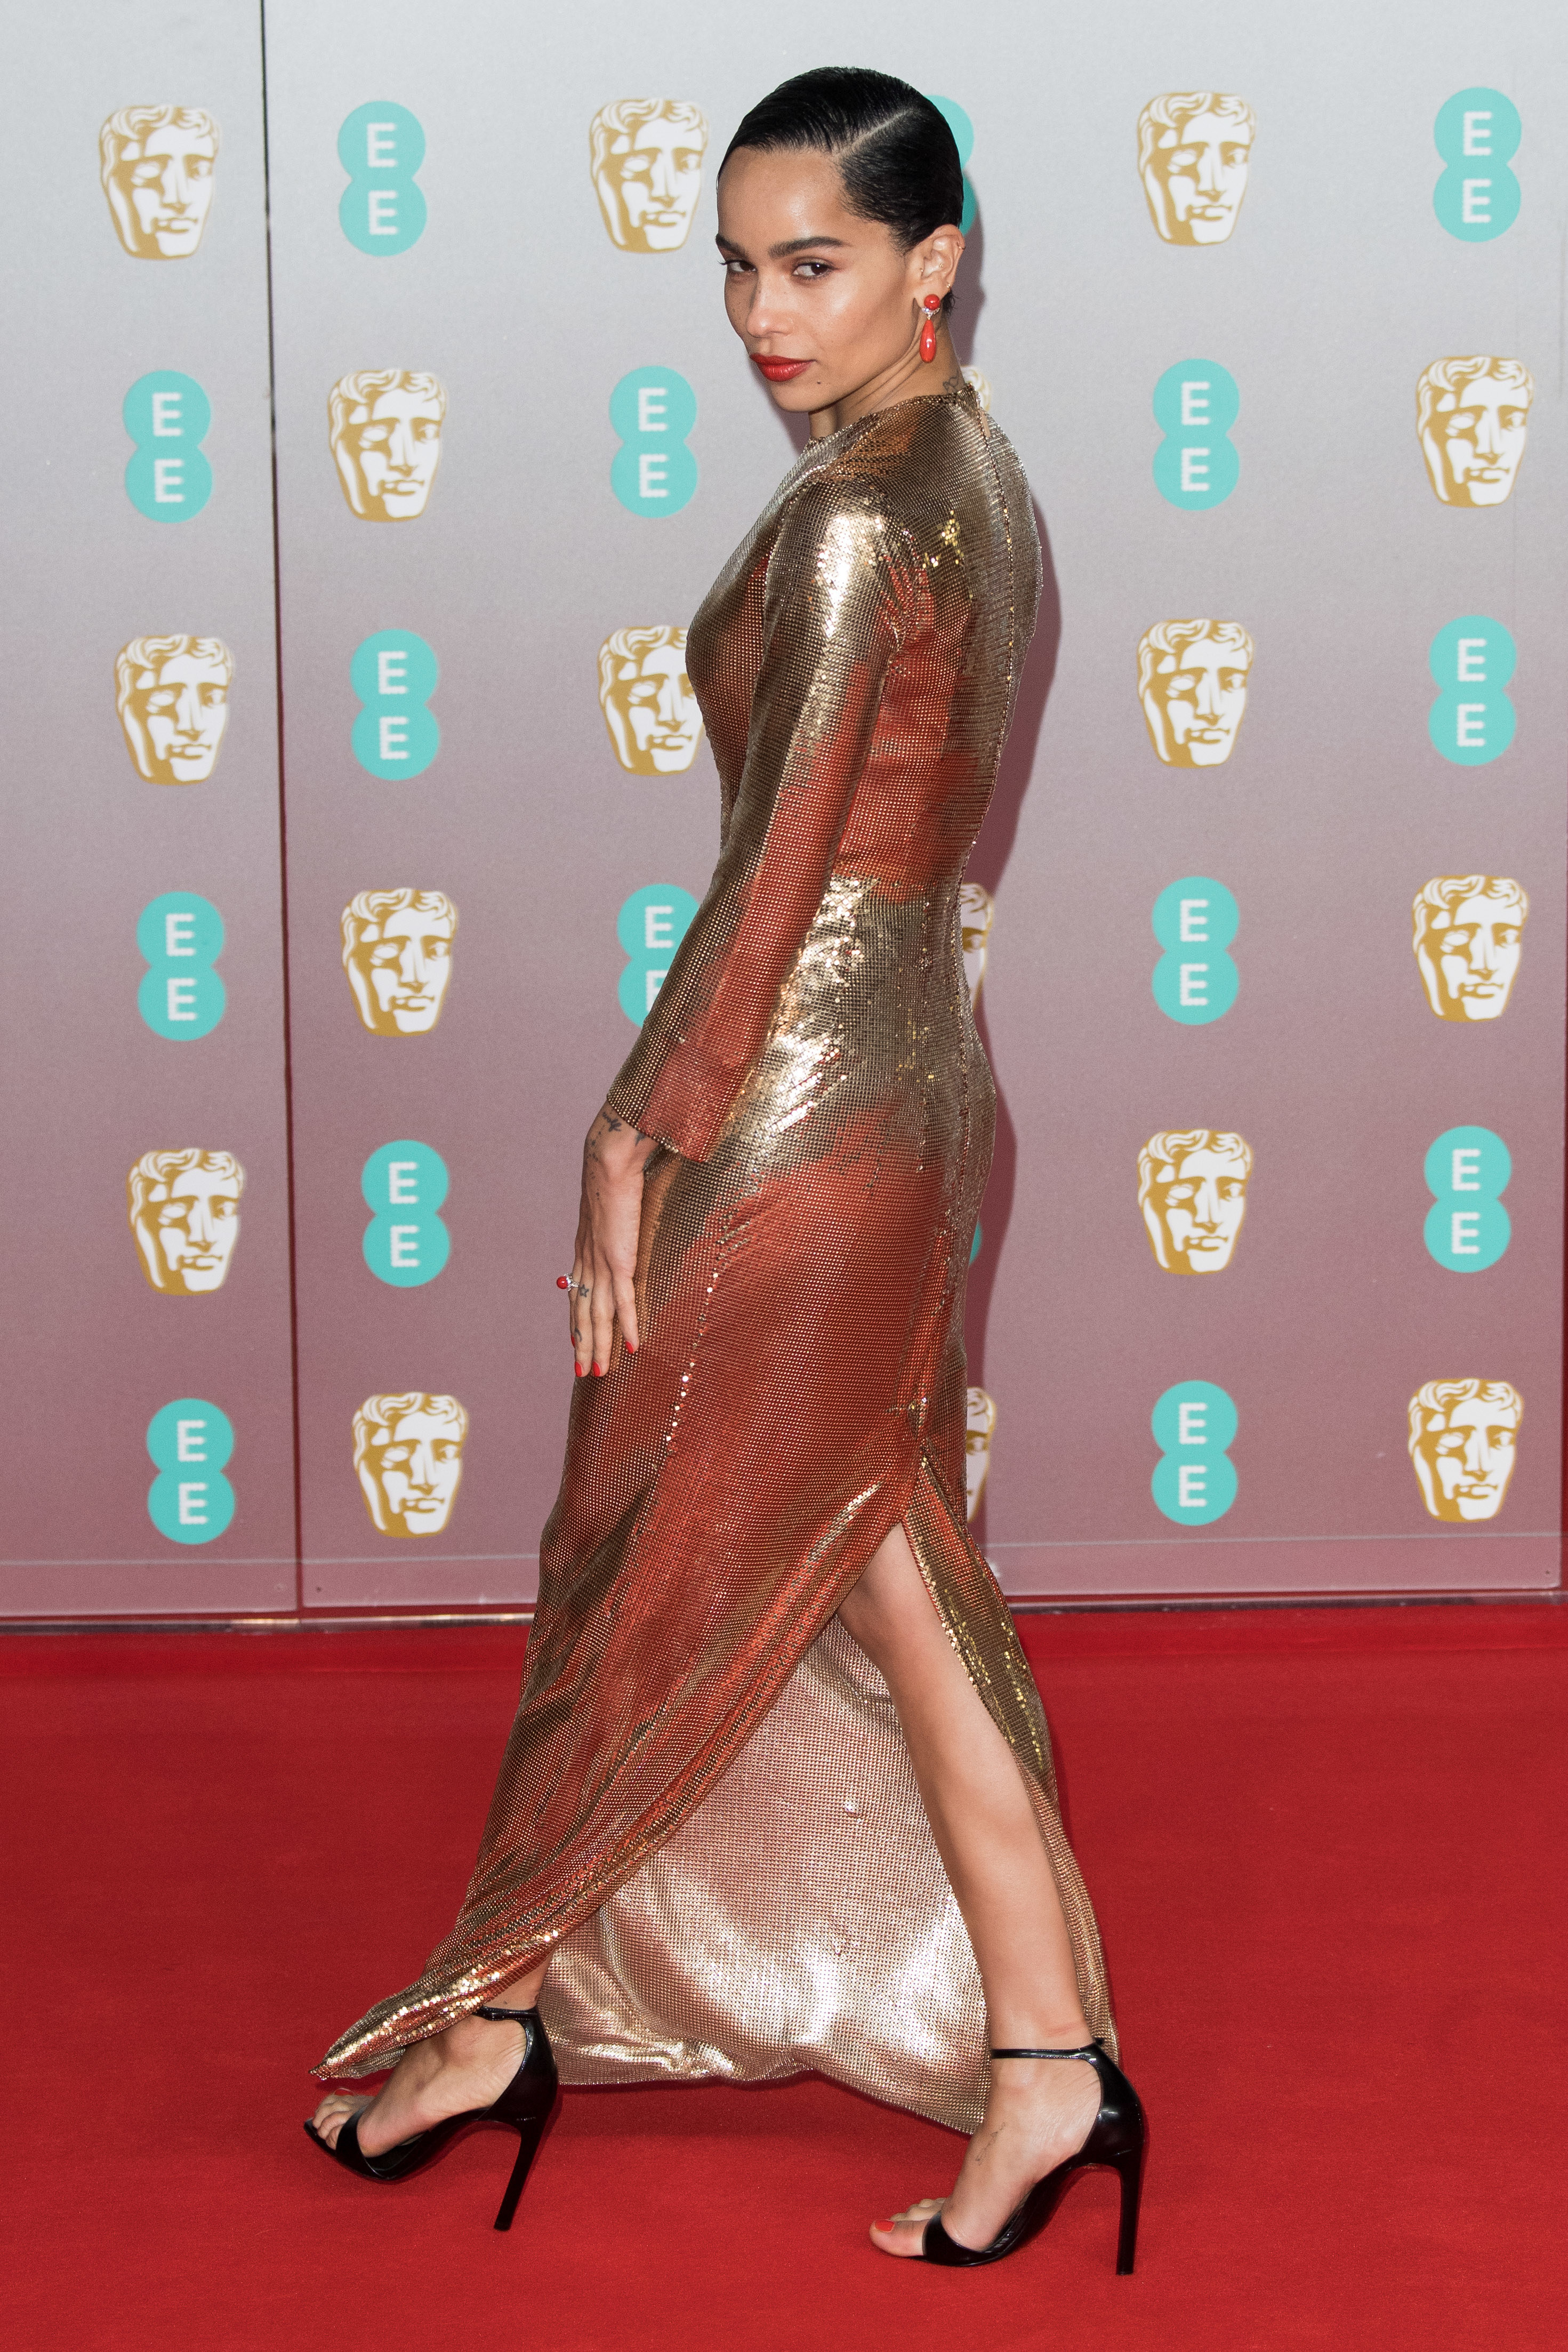 Zoe on red carpet in long metallic gown with high heels